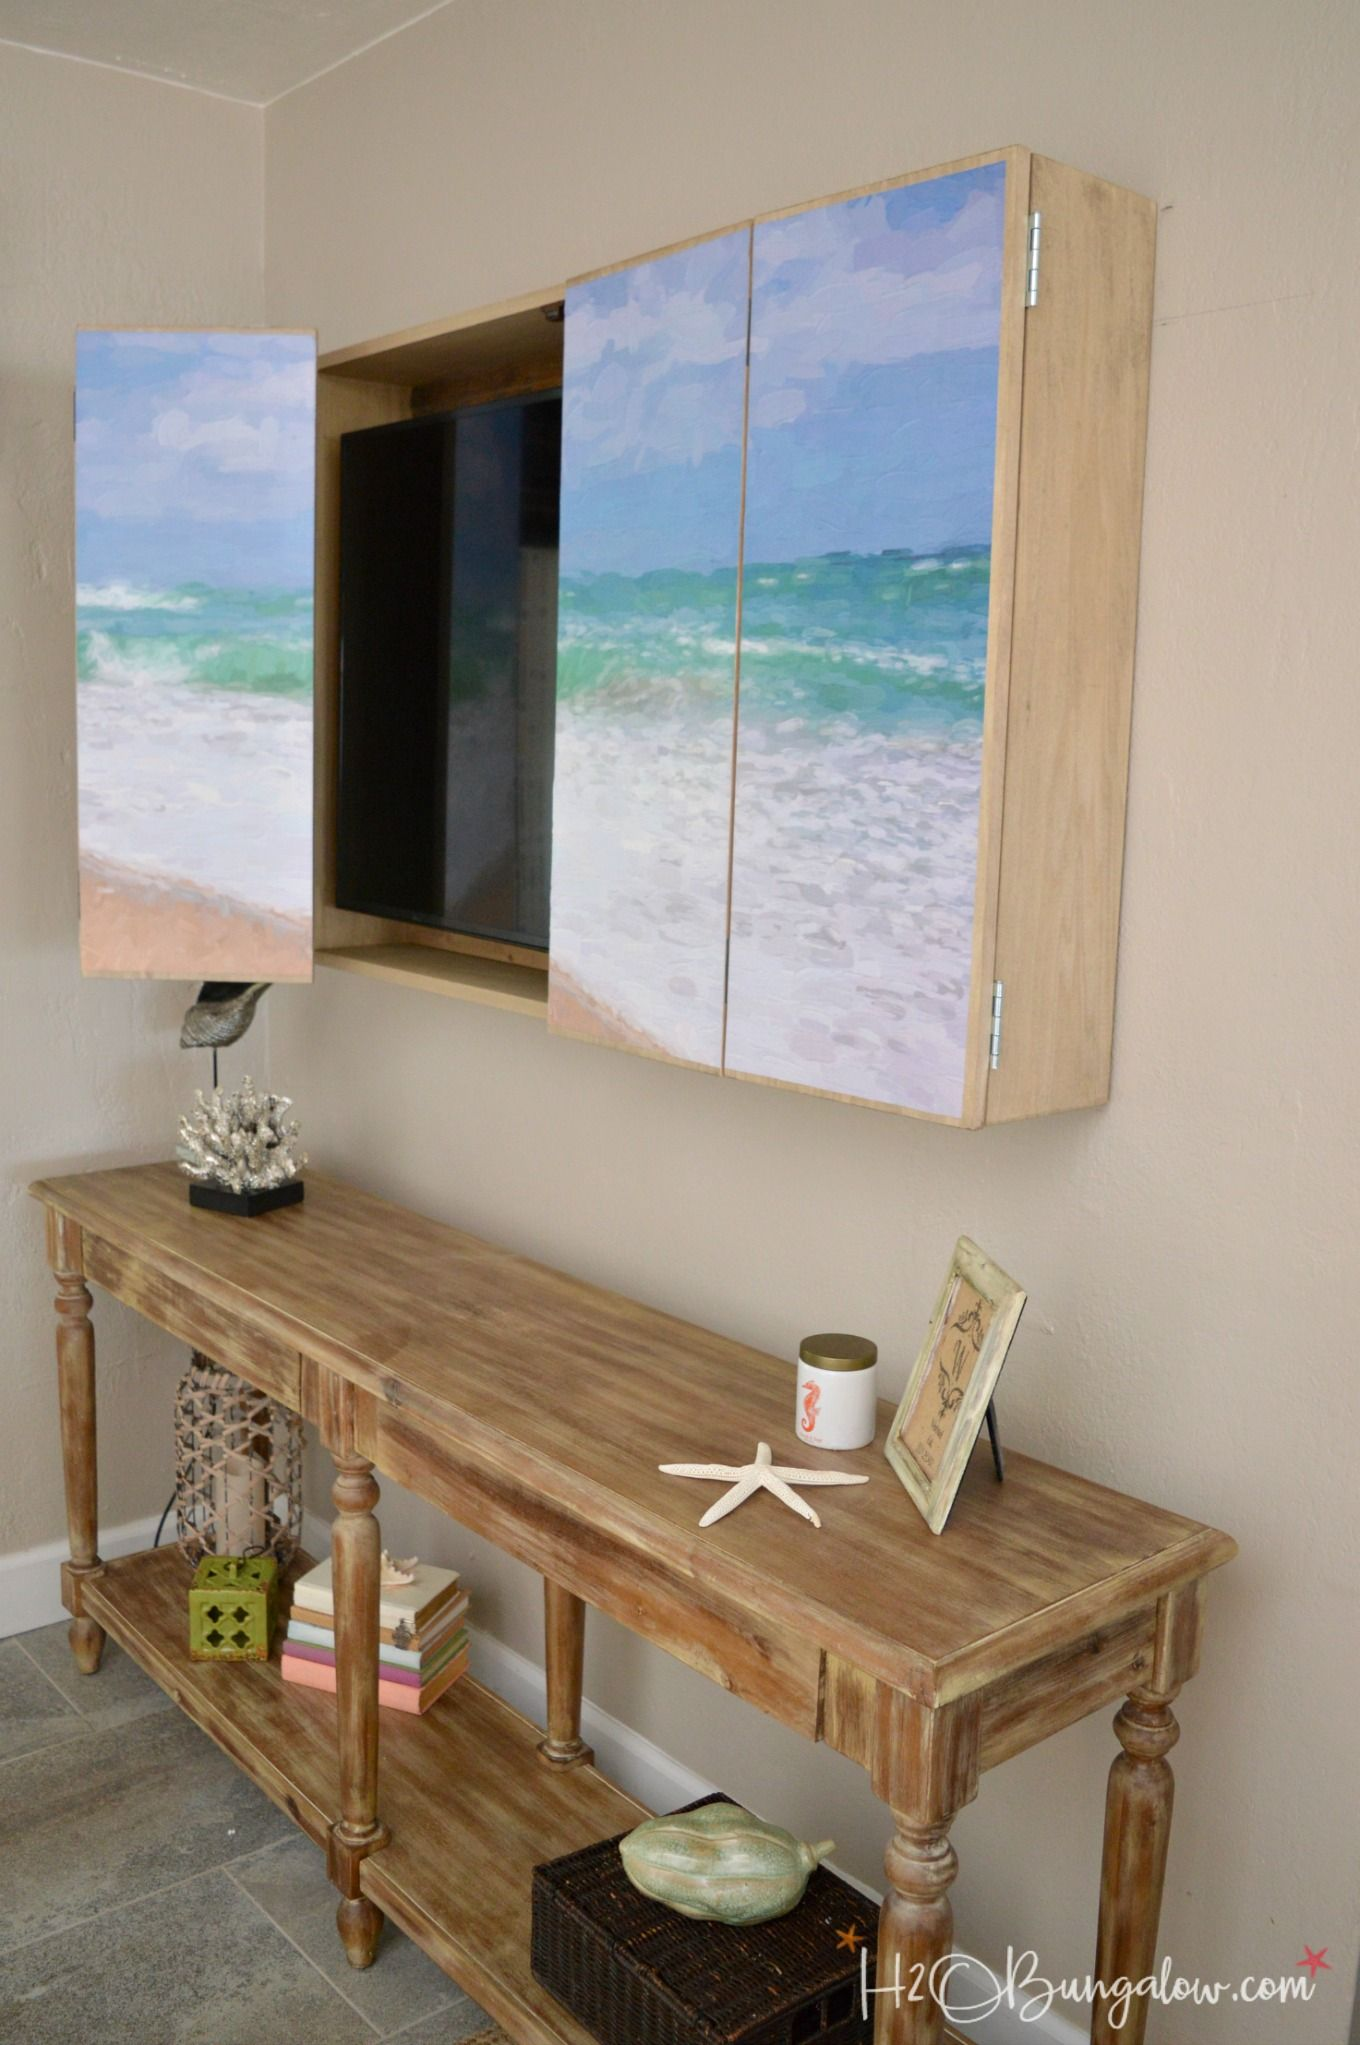 hide tv furniture. Free Plans For A DIY Wall Mounted Tv Cabinet. Build Cabinet To Hide The Flat Screen TV Behind Art In Your Home. Simple Instructions Hidden Furniture 1